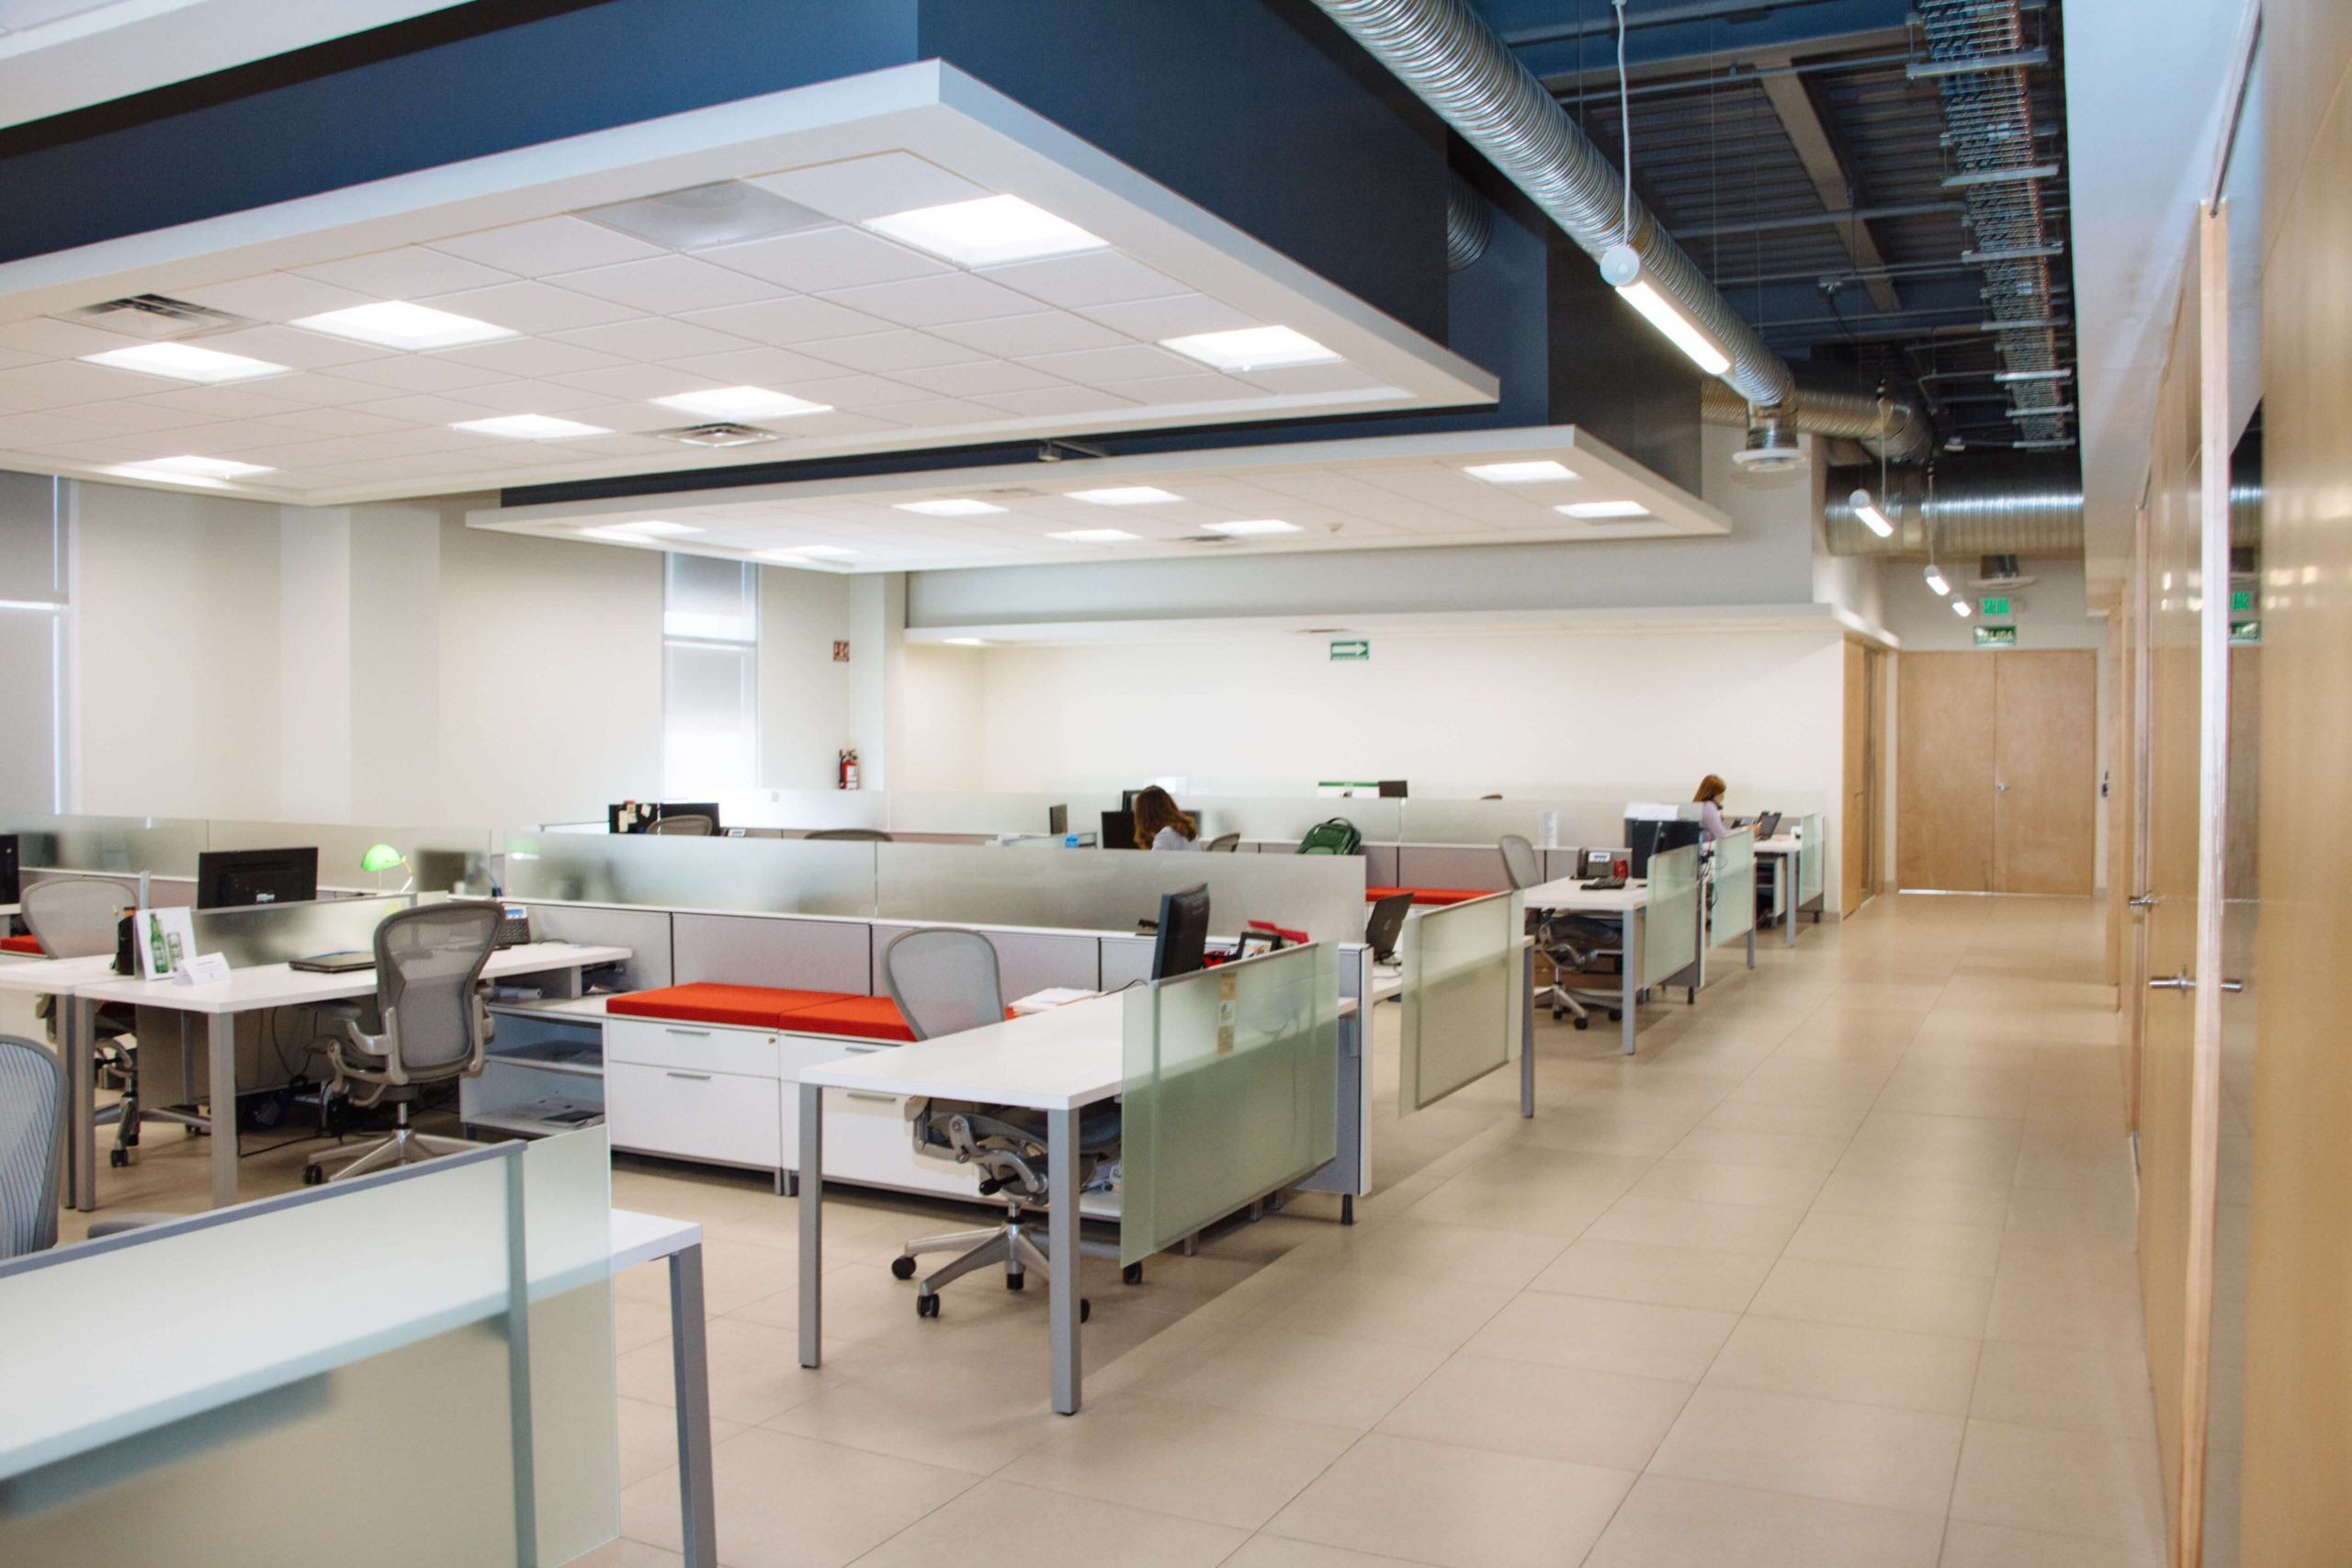 COVID-19 Safety Could Change Your Workplace With Office Partitions and Other Furniture